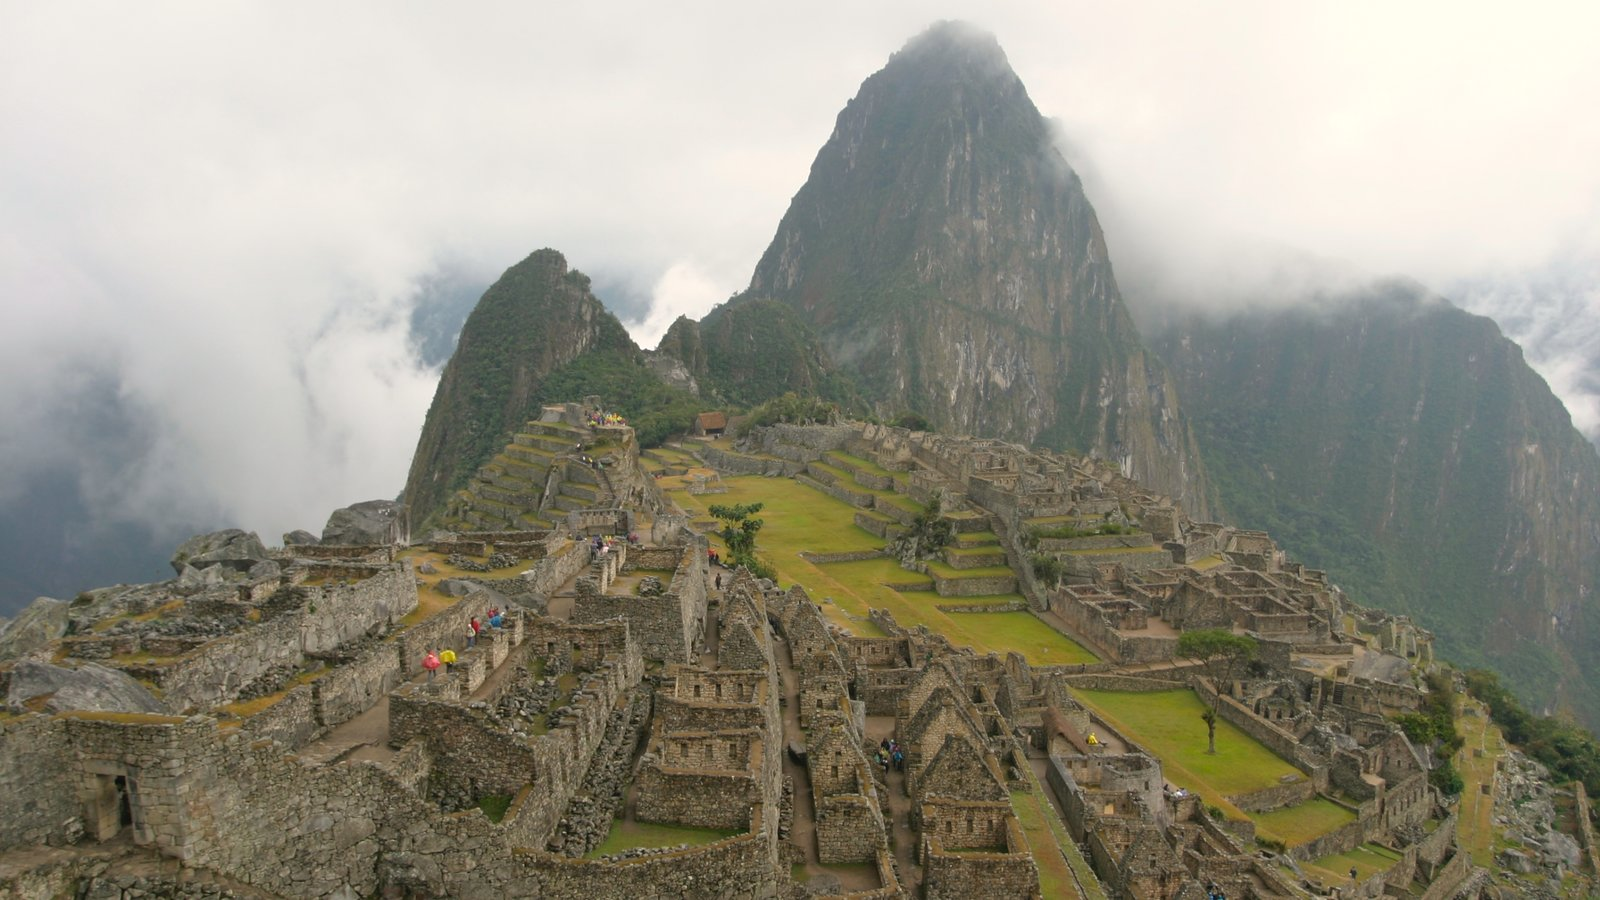 Machu Picchu showing building ruins, mist or fog and mountains